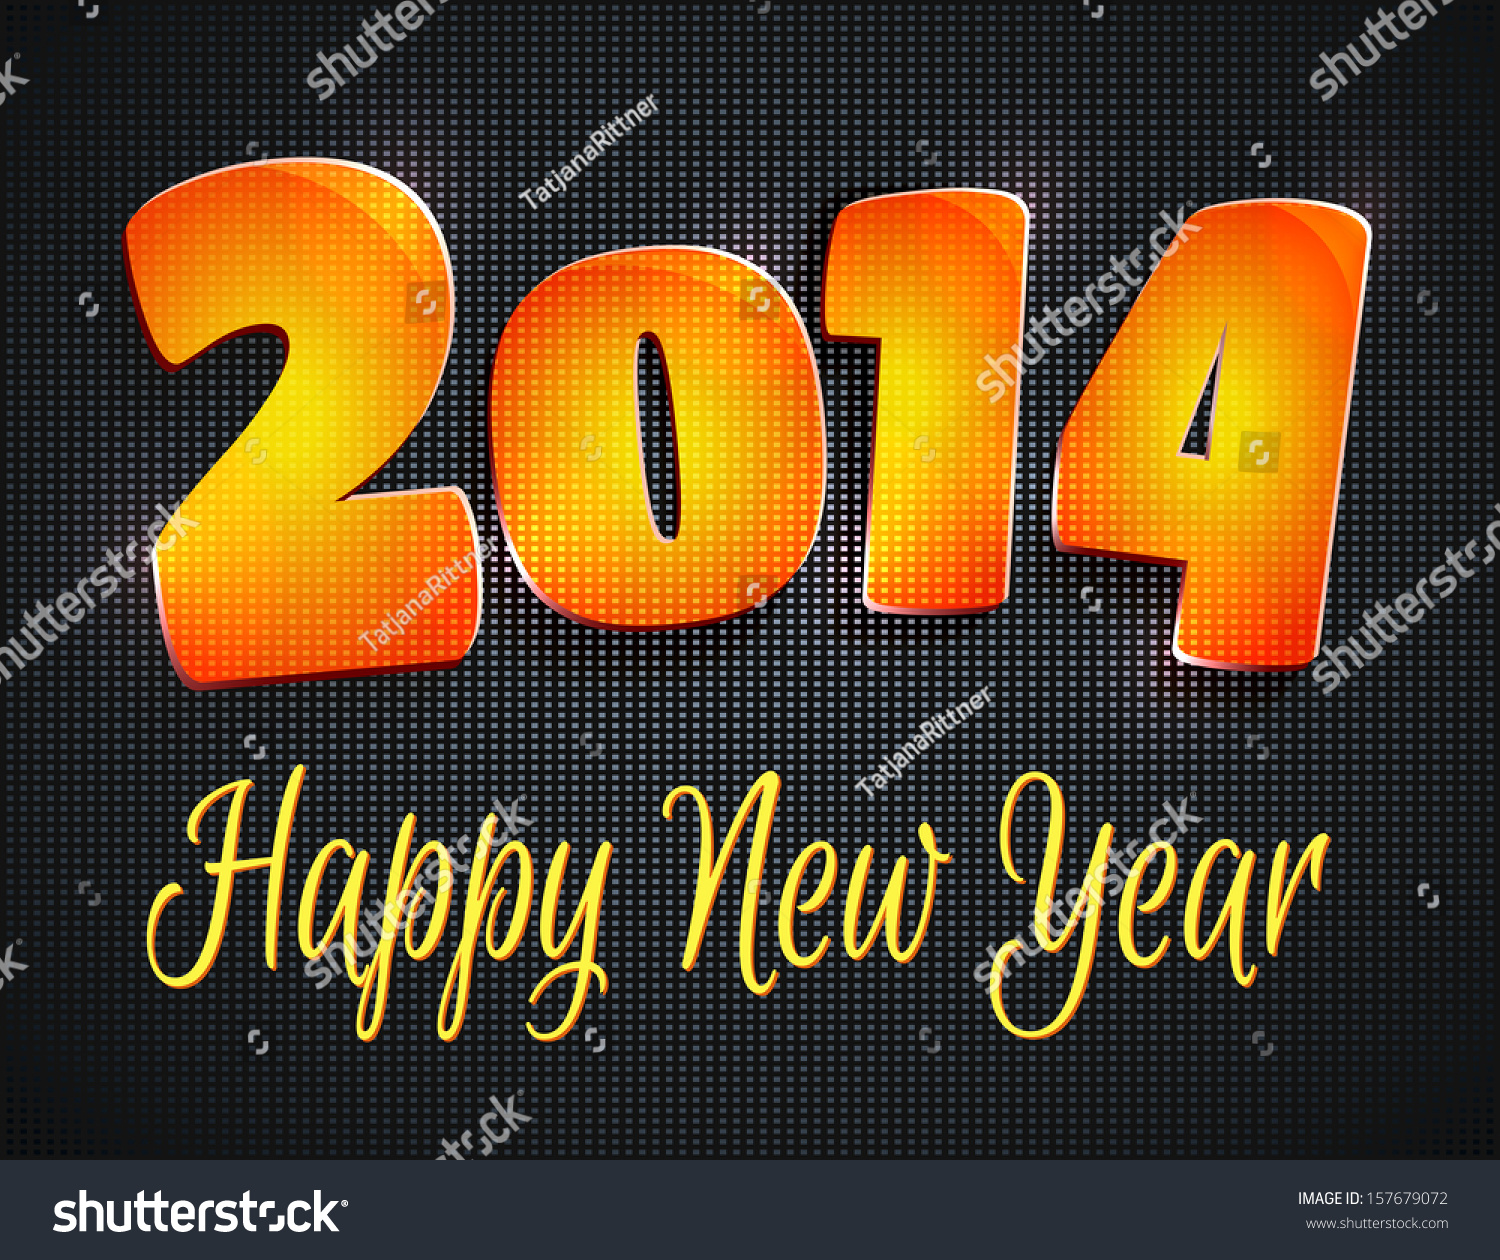 Happy new year 2014 greeting card stock illustration 157679072 happy new year 2014 greeting card m4hsunfo